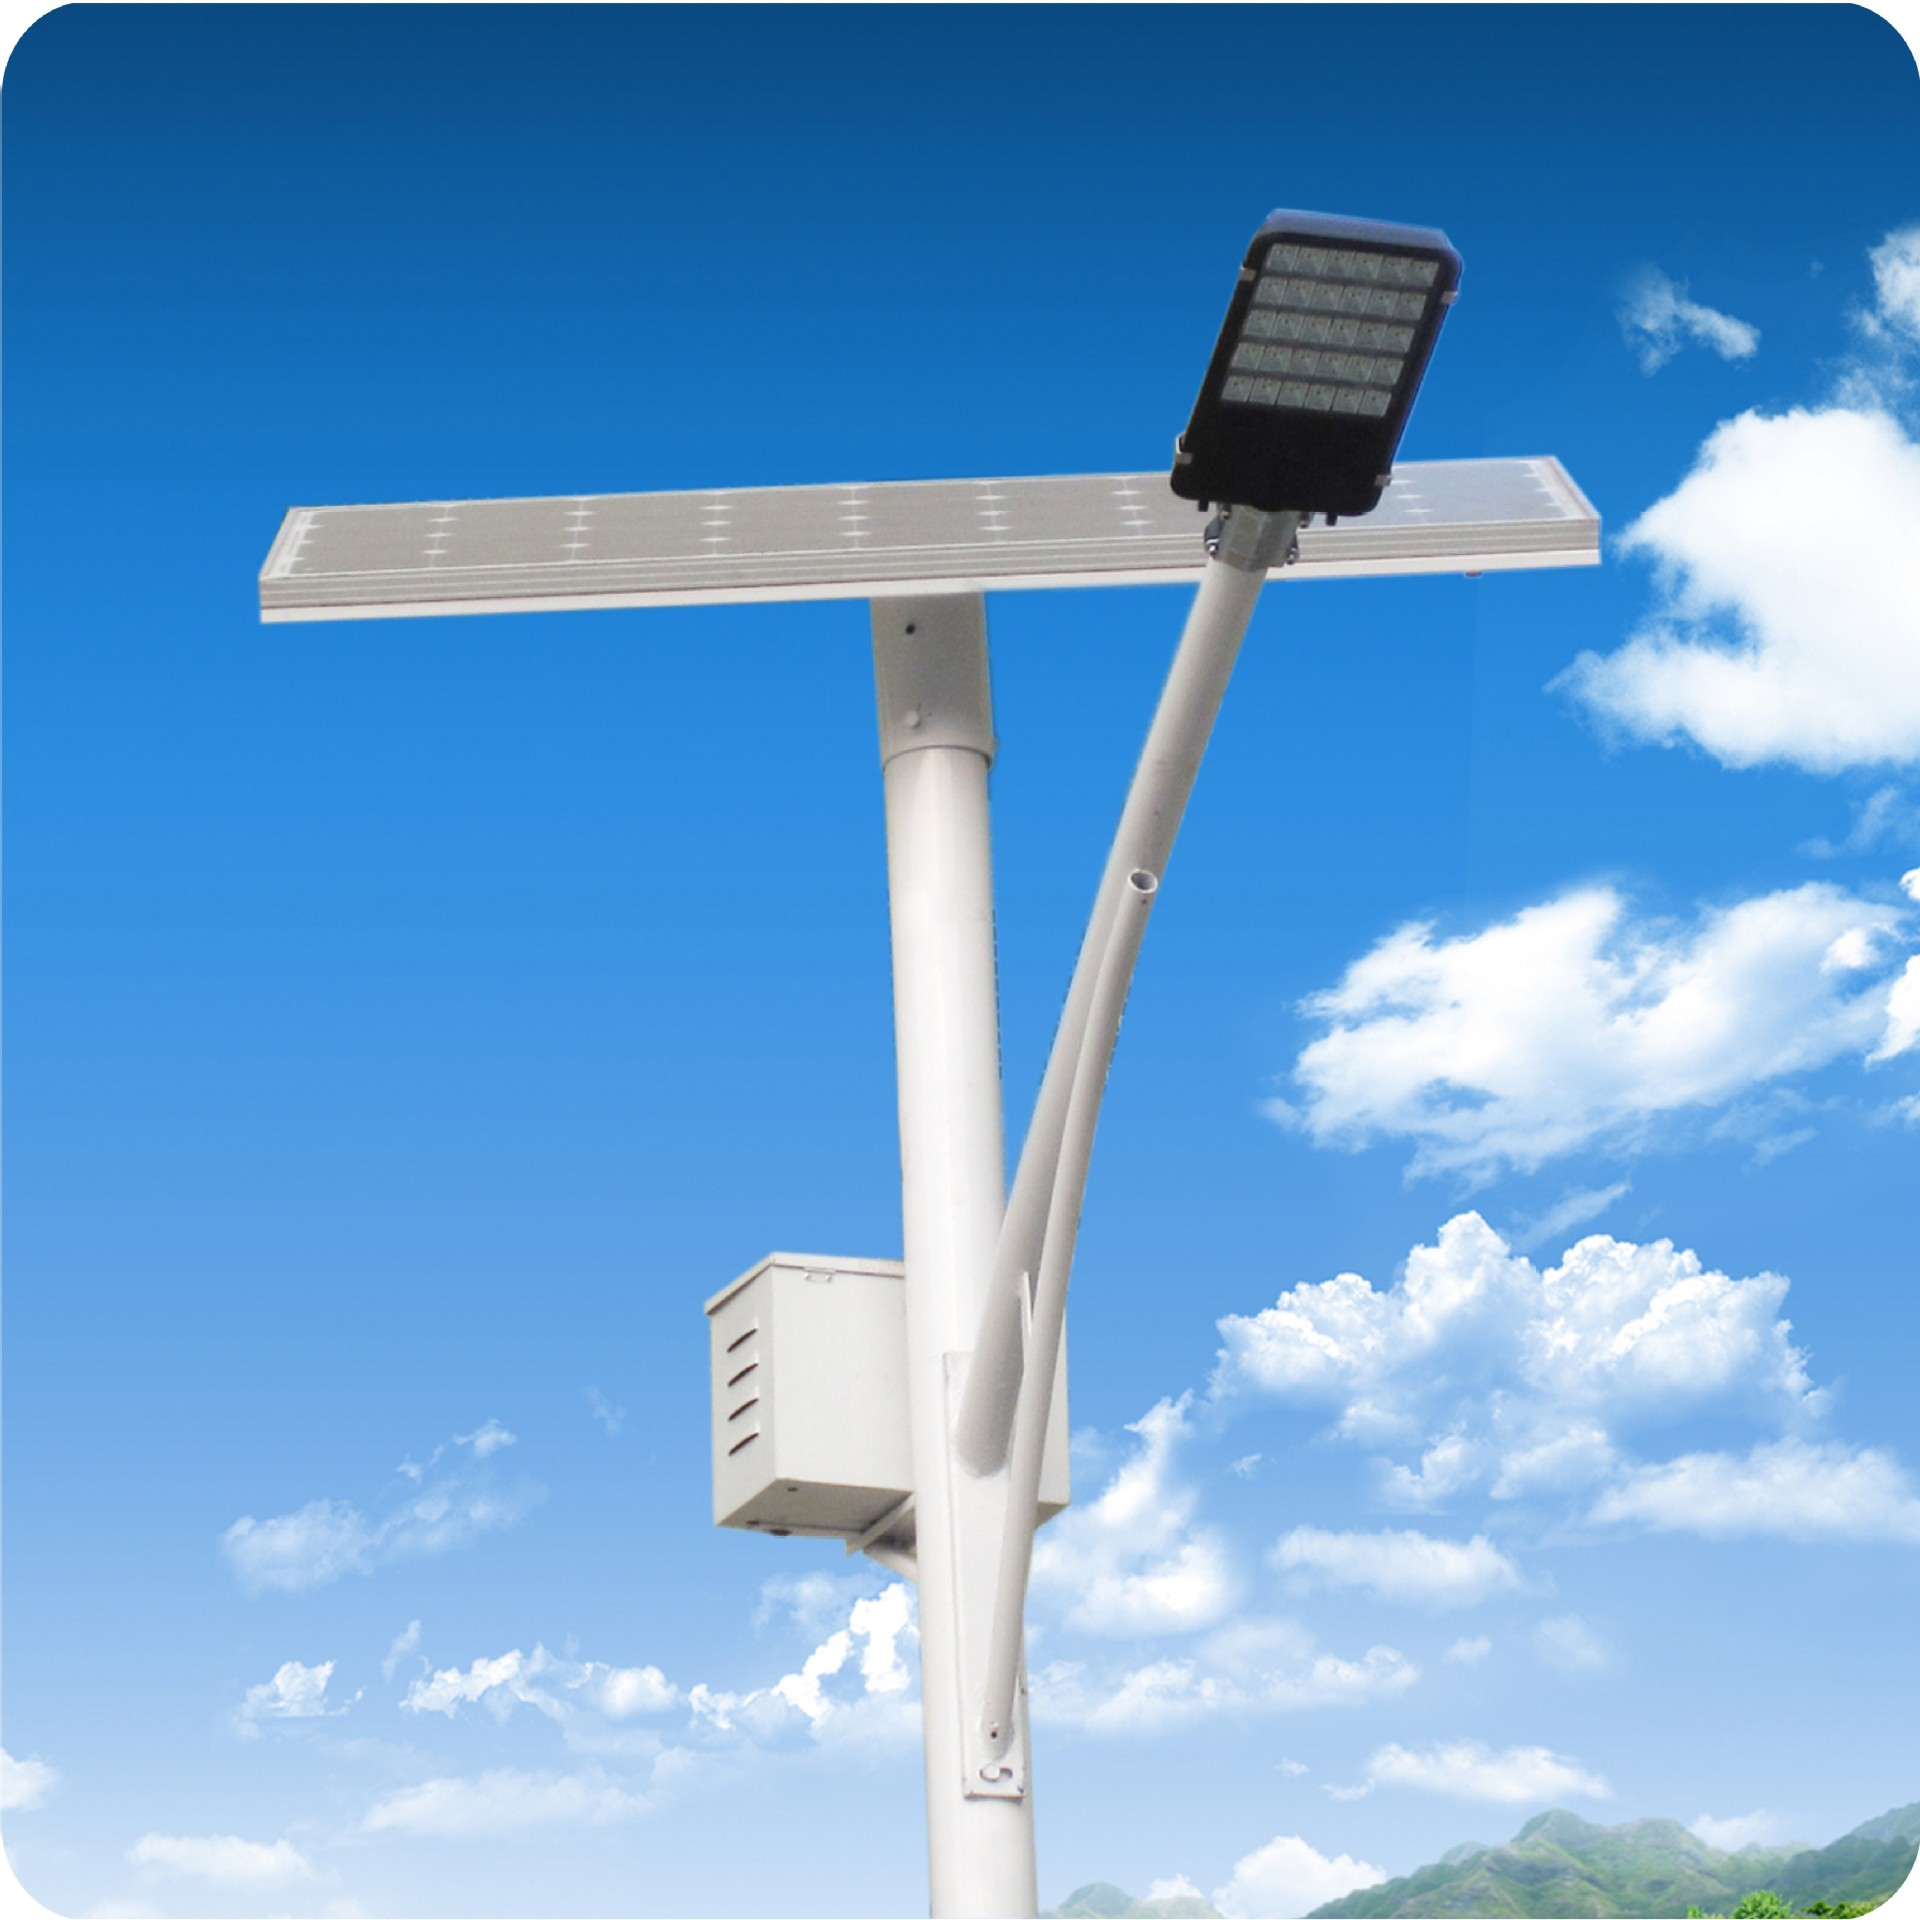 Light Shop Heigham Street Norwich: Quality Solar Led Street Light Manufacturer In China